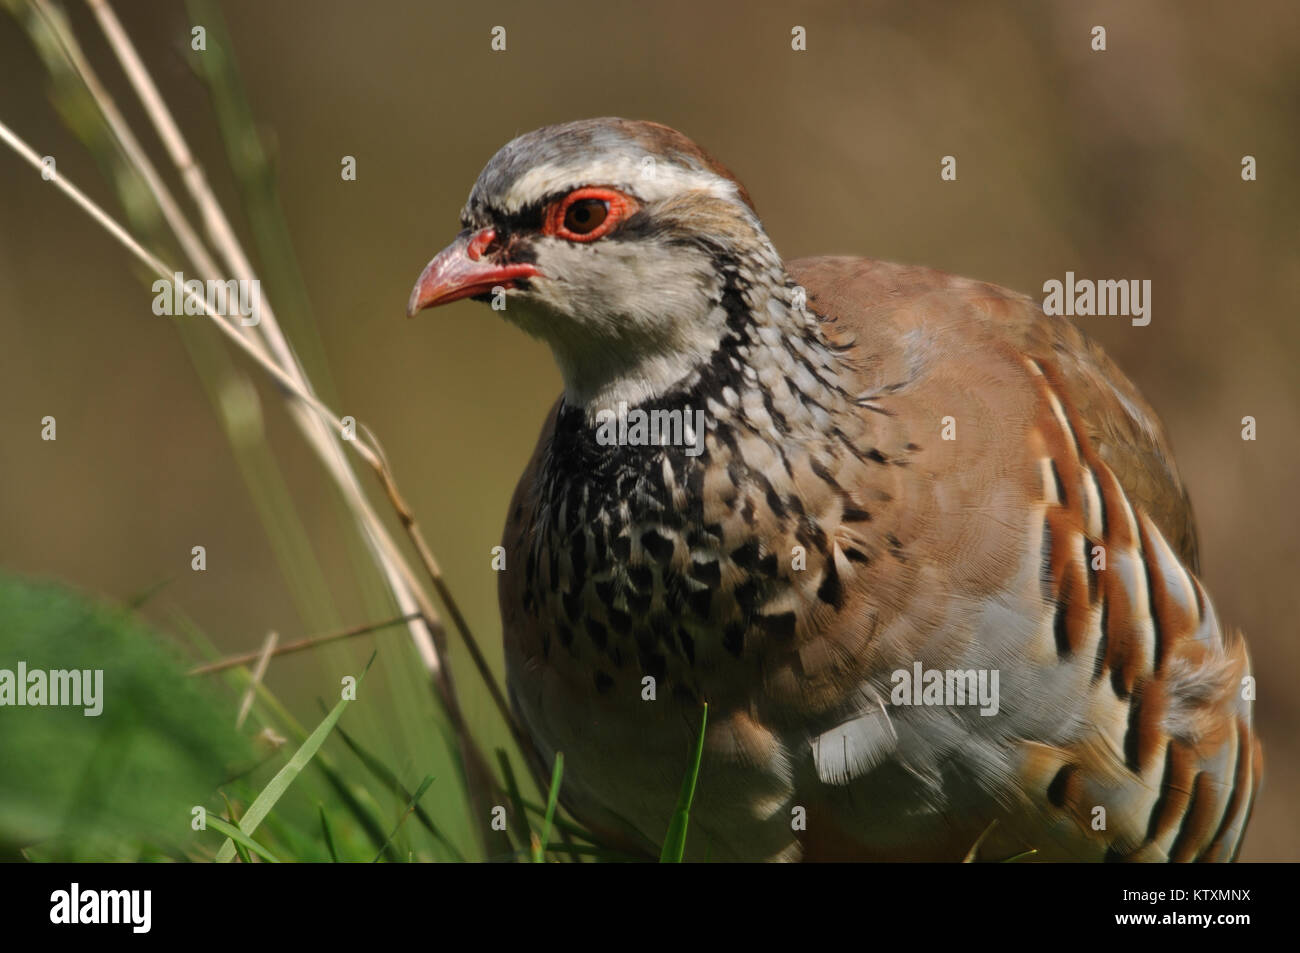 Red- legged partridge or Chukor, Alectoris chukor, on the llokout for danger, New Zealand - Stock Image